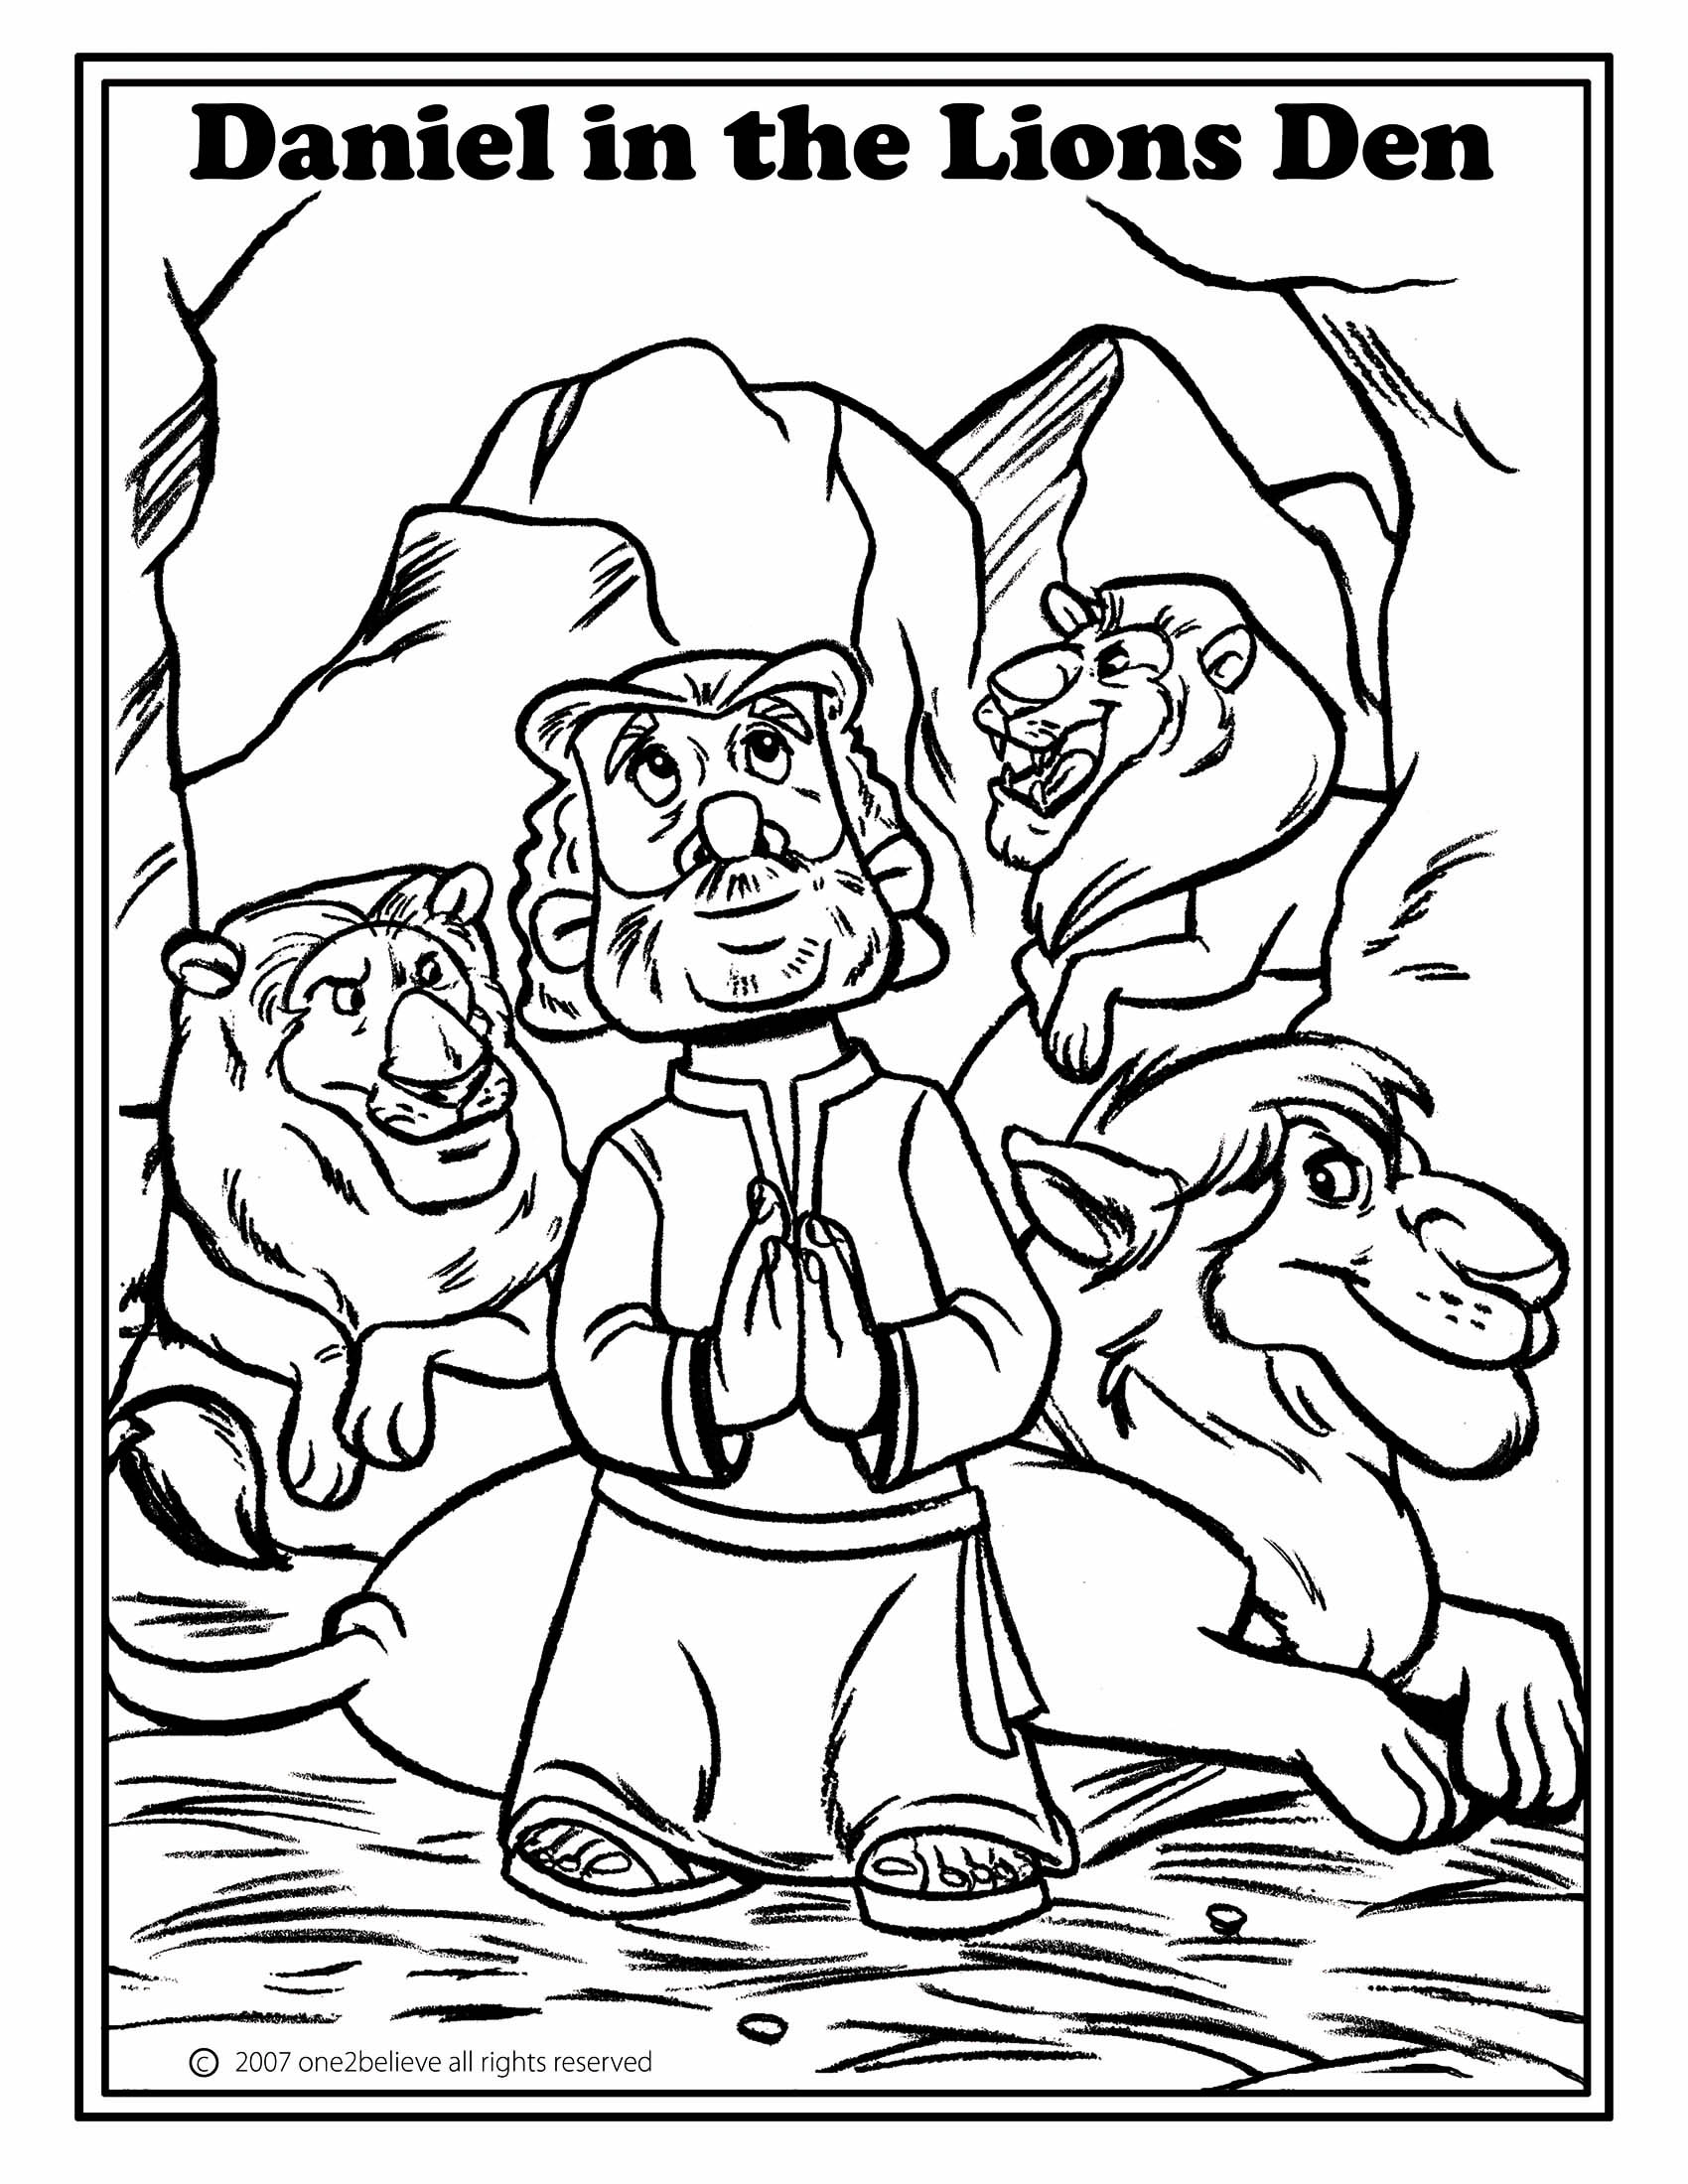 one2believe bible based toys for children kids check out our fun activities stories coloring pages wallpapers - Bible Coloring Pages Cain Abel